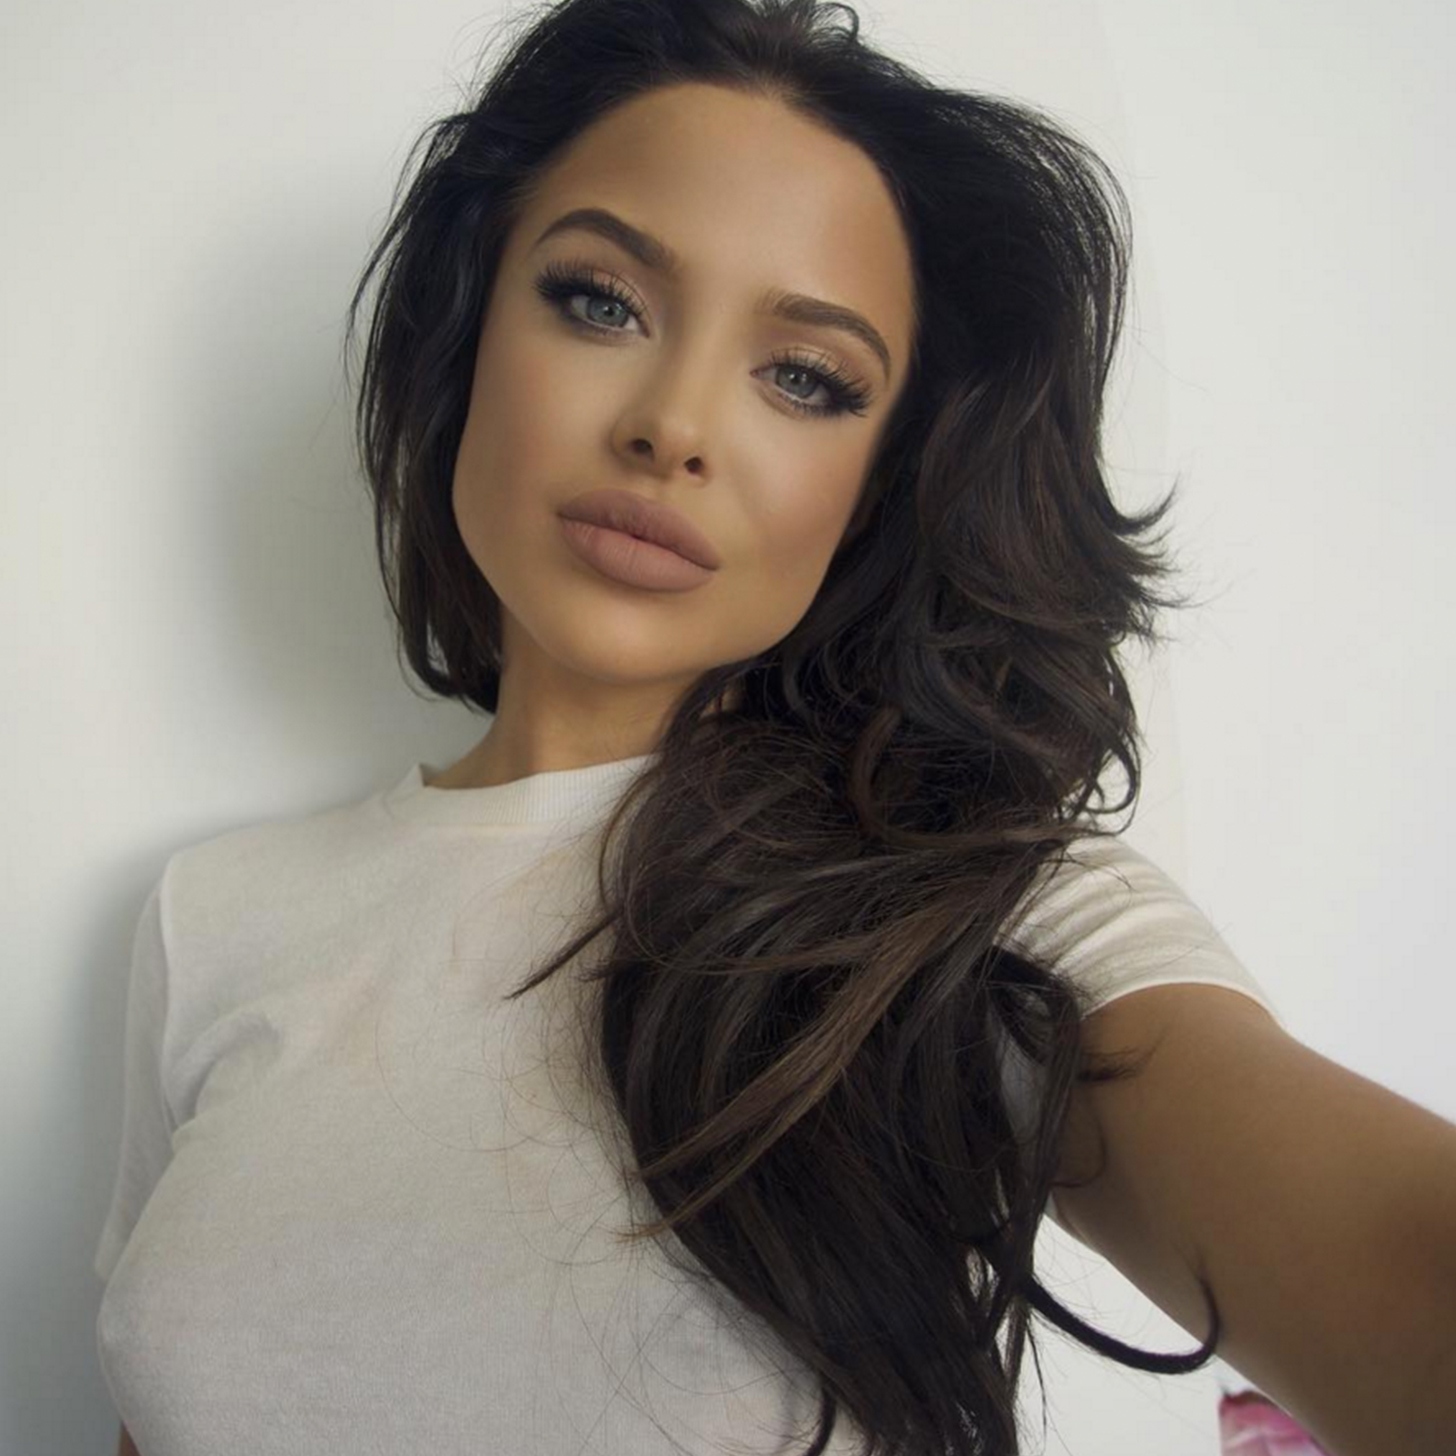 Model Who Looks Like Angelina Jolie Video Popsugar